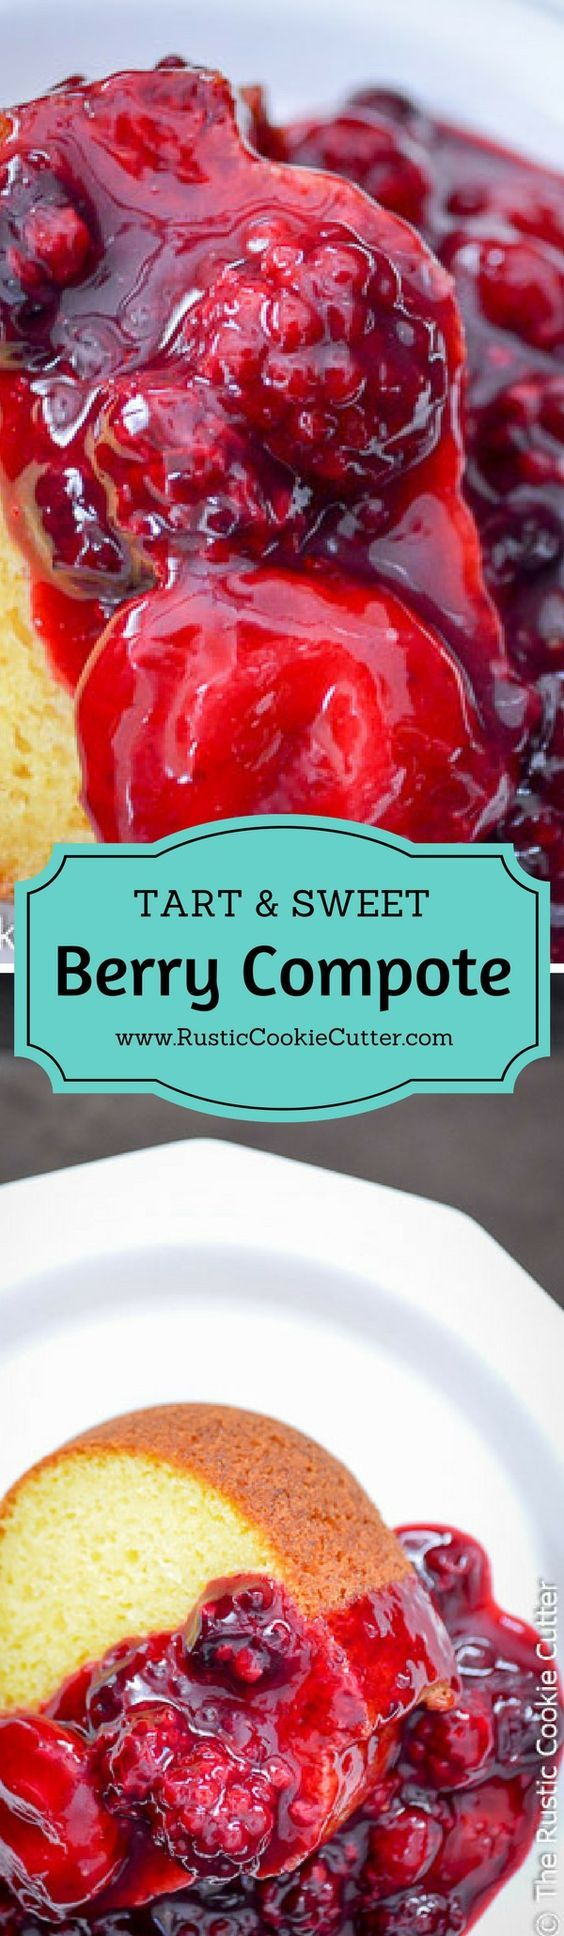 How to Make Super Easy Triple Berry Compote - What a simple, delicious spring recipe for those sweet berries! It's good on so many different things! Cake, ice cream, pie, pancakes, the options are deliciously endless!